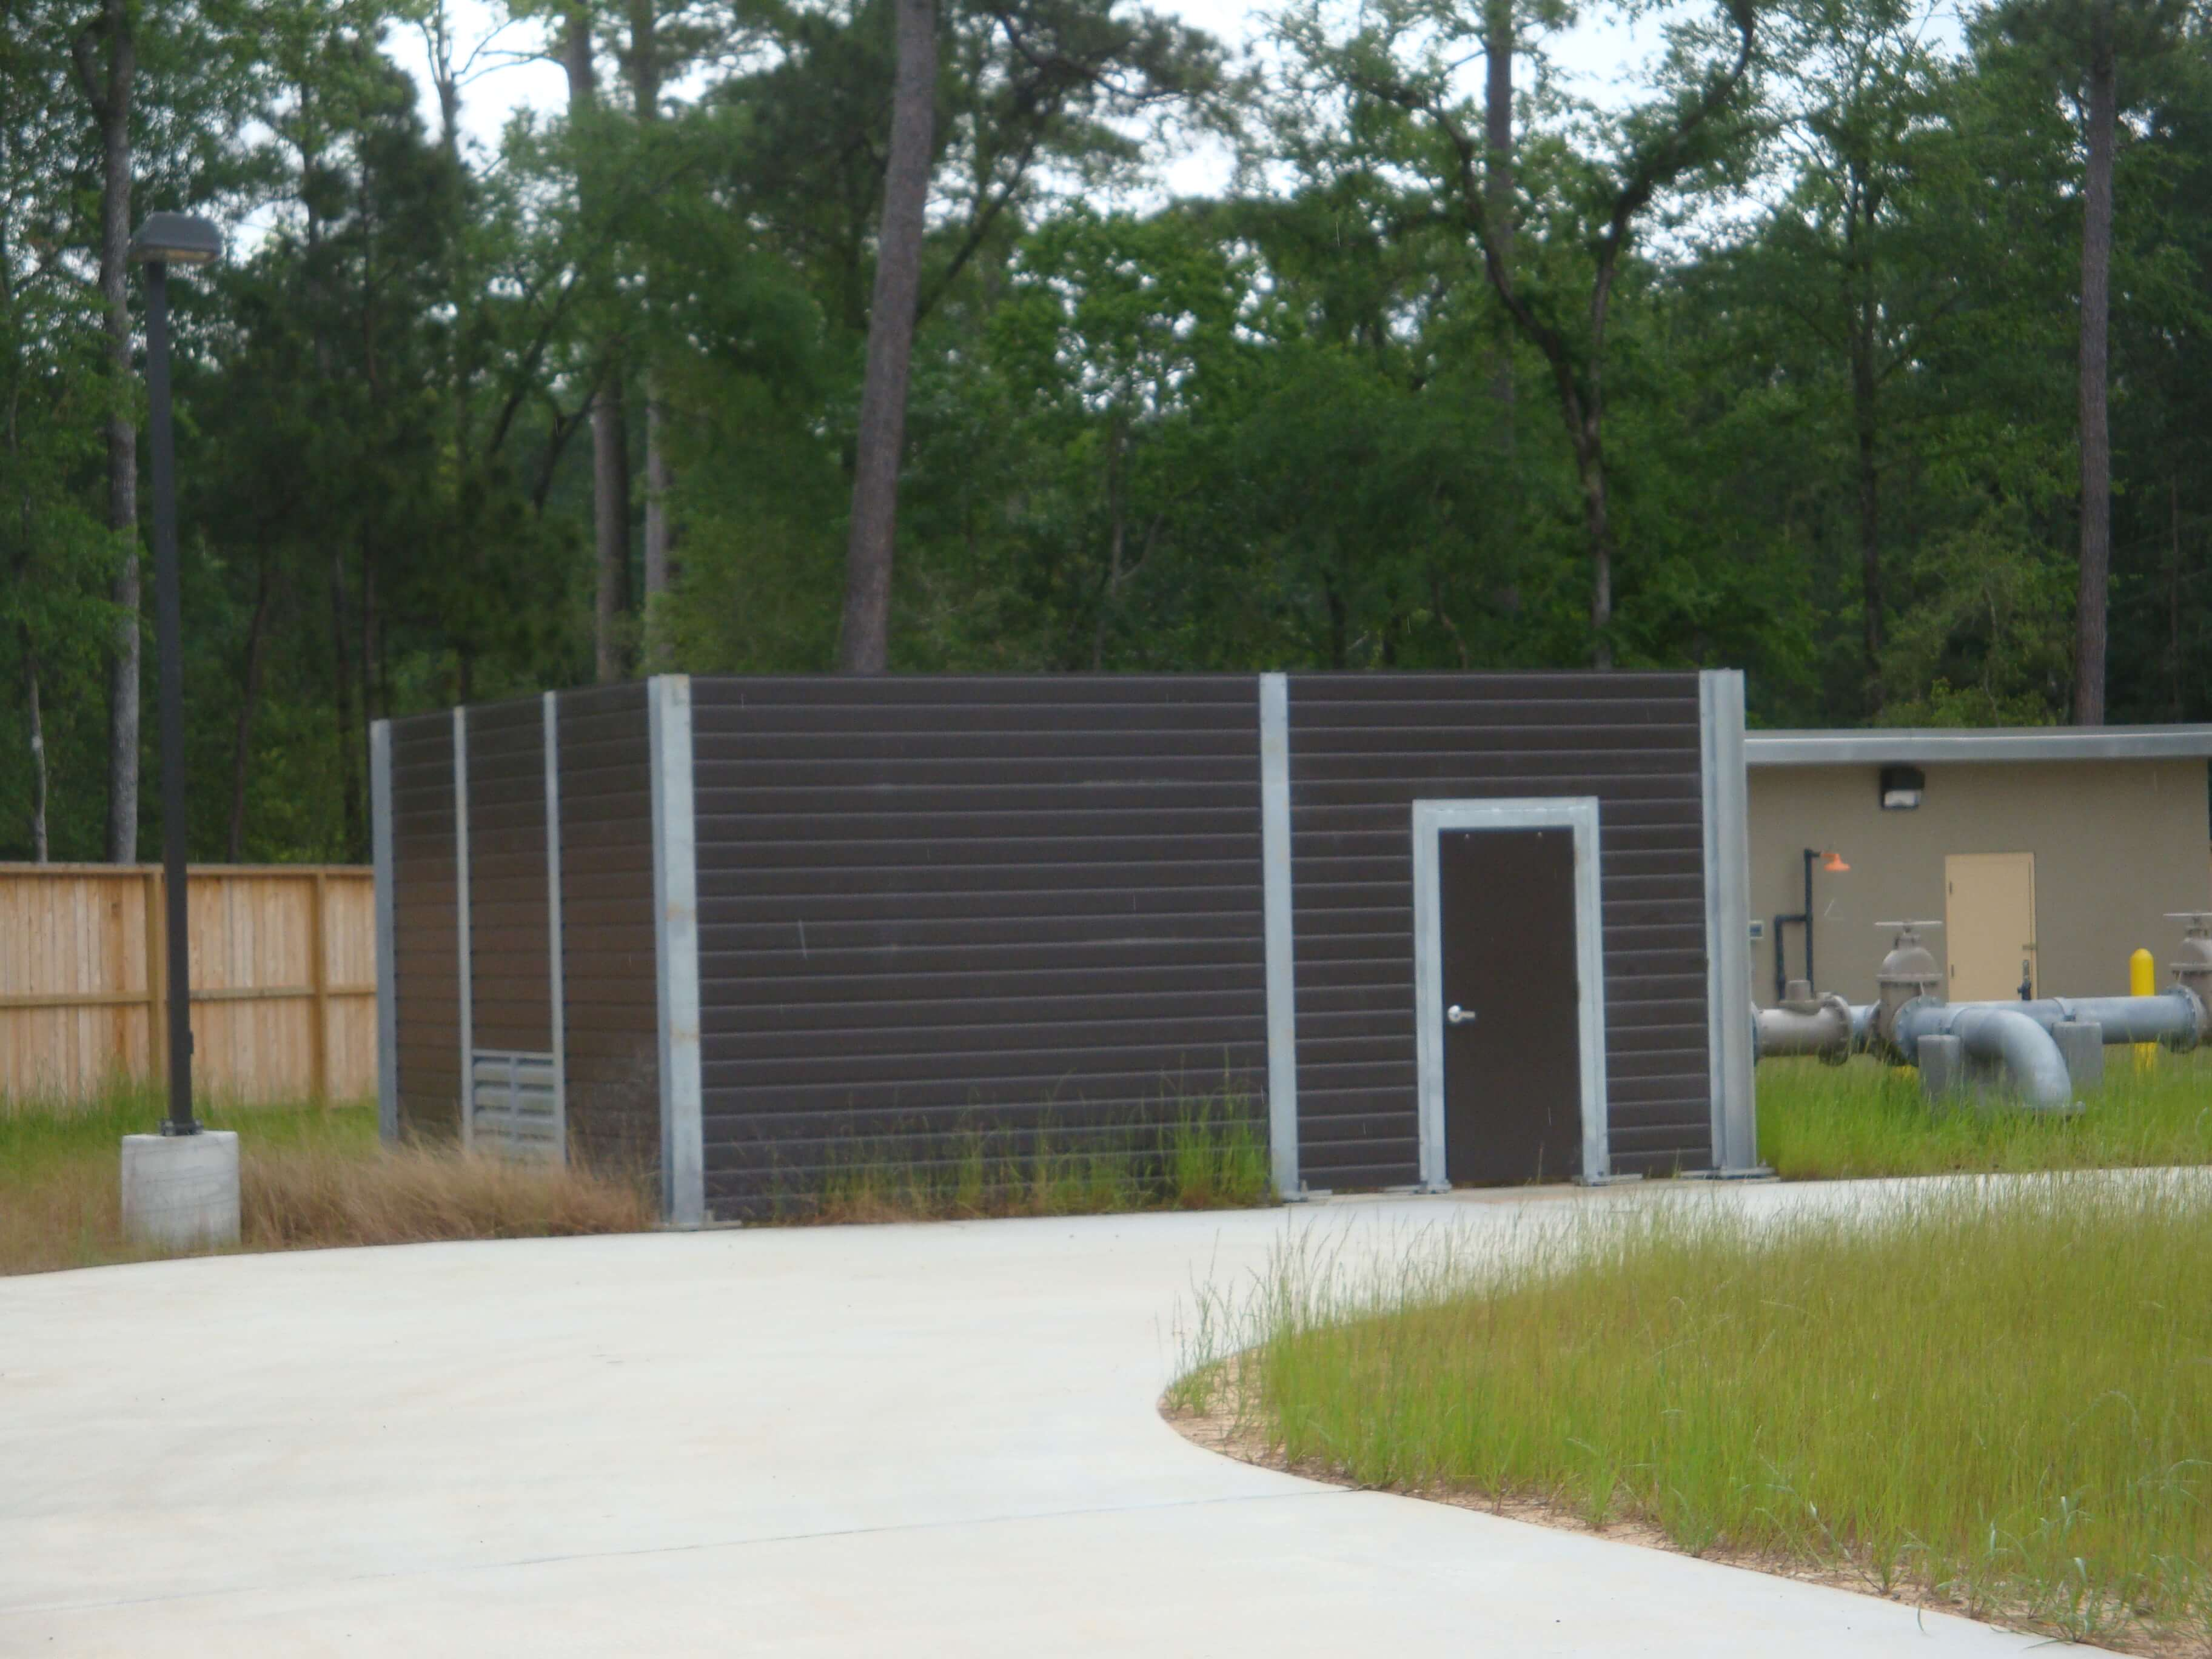 Outdoor Sound Barrier Panels | Outdoor Sound Wall | Noise Barrier